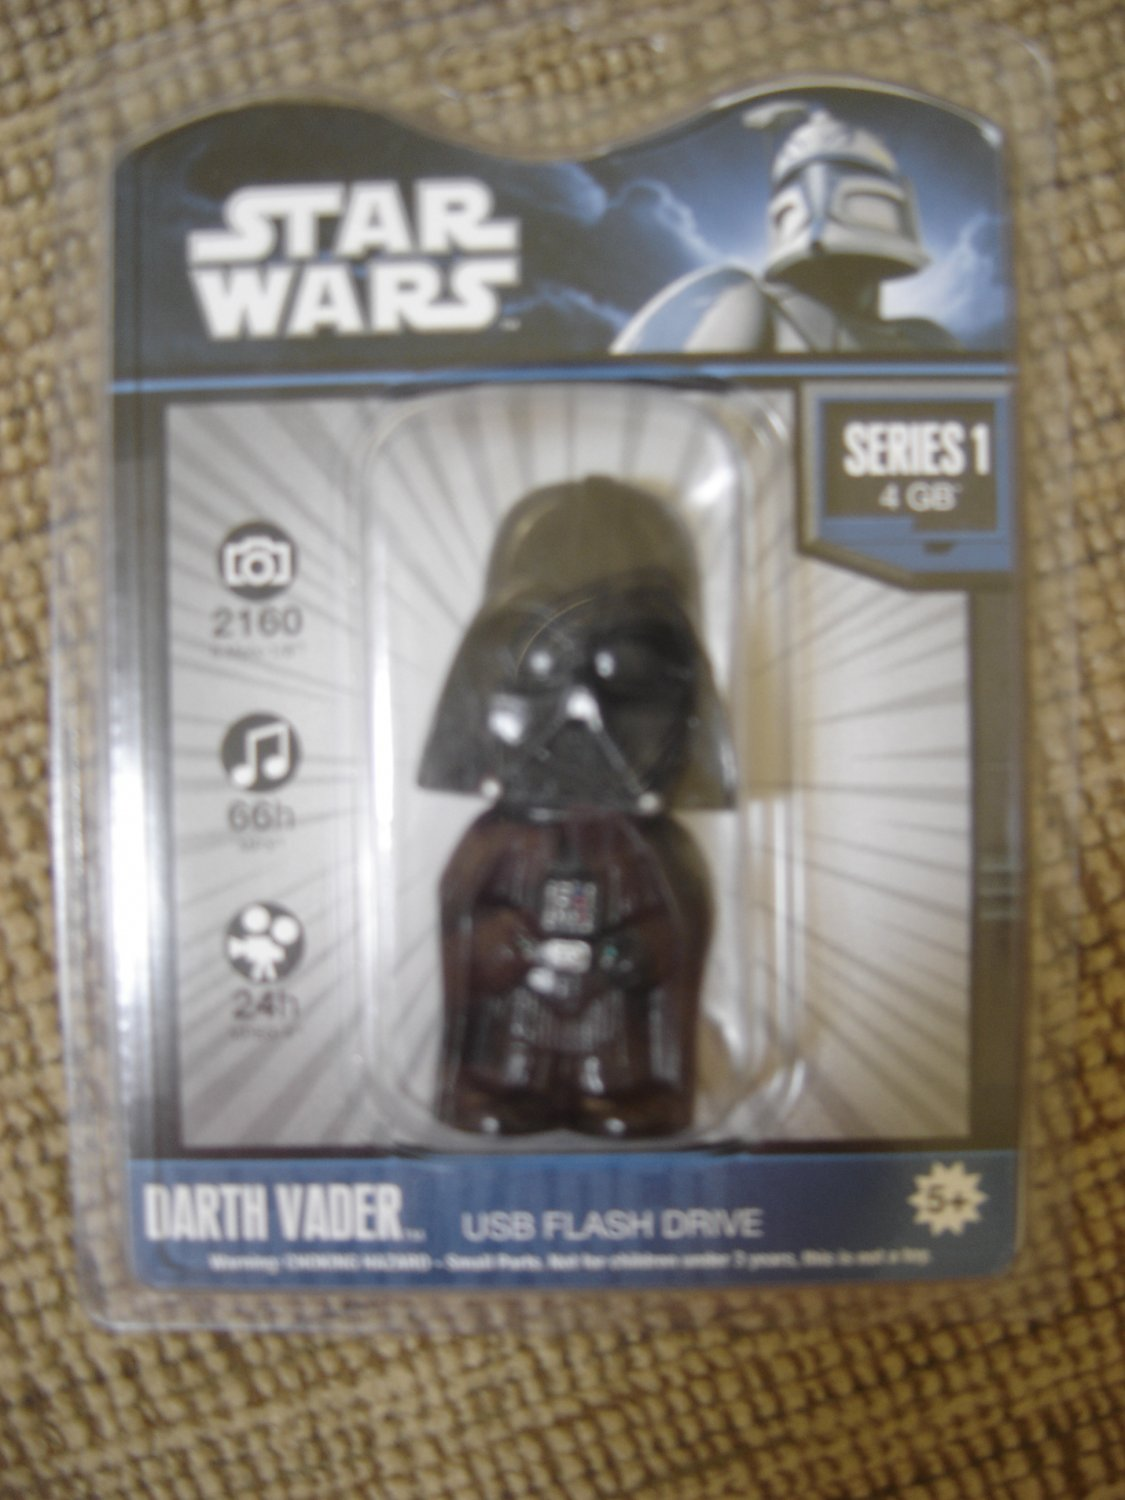 STAR WARS DARTH VADER 4GB USB Flash Drive by Tyme Machines!